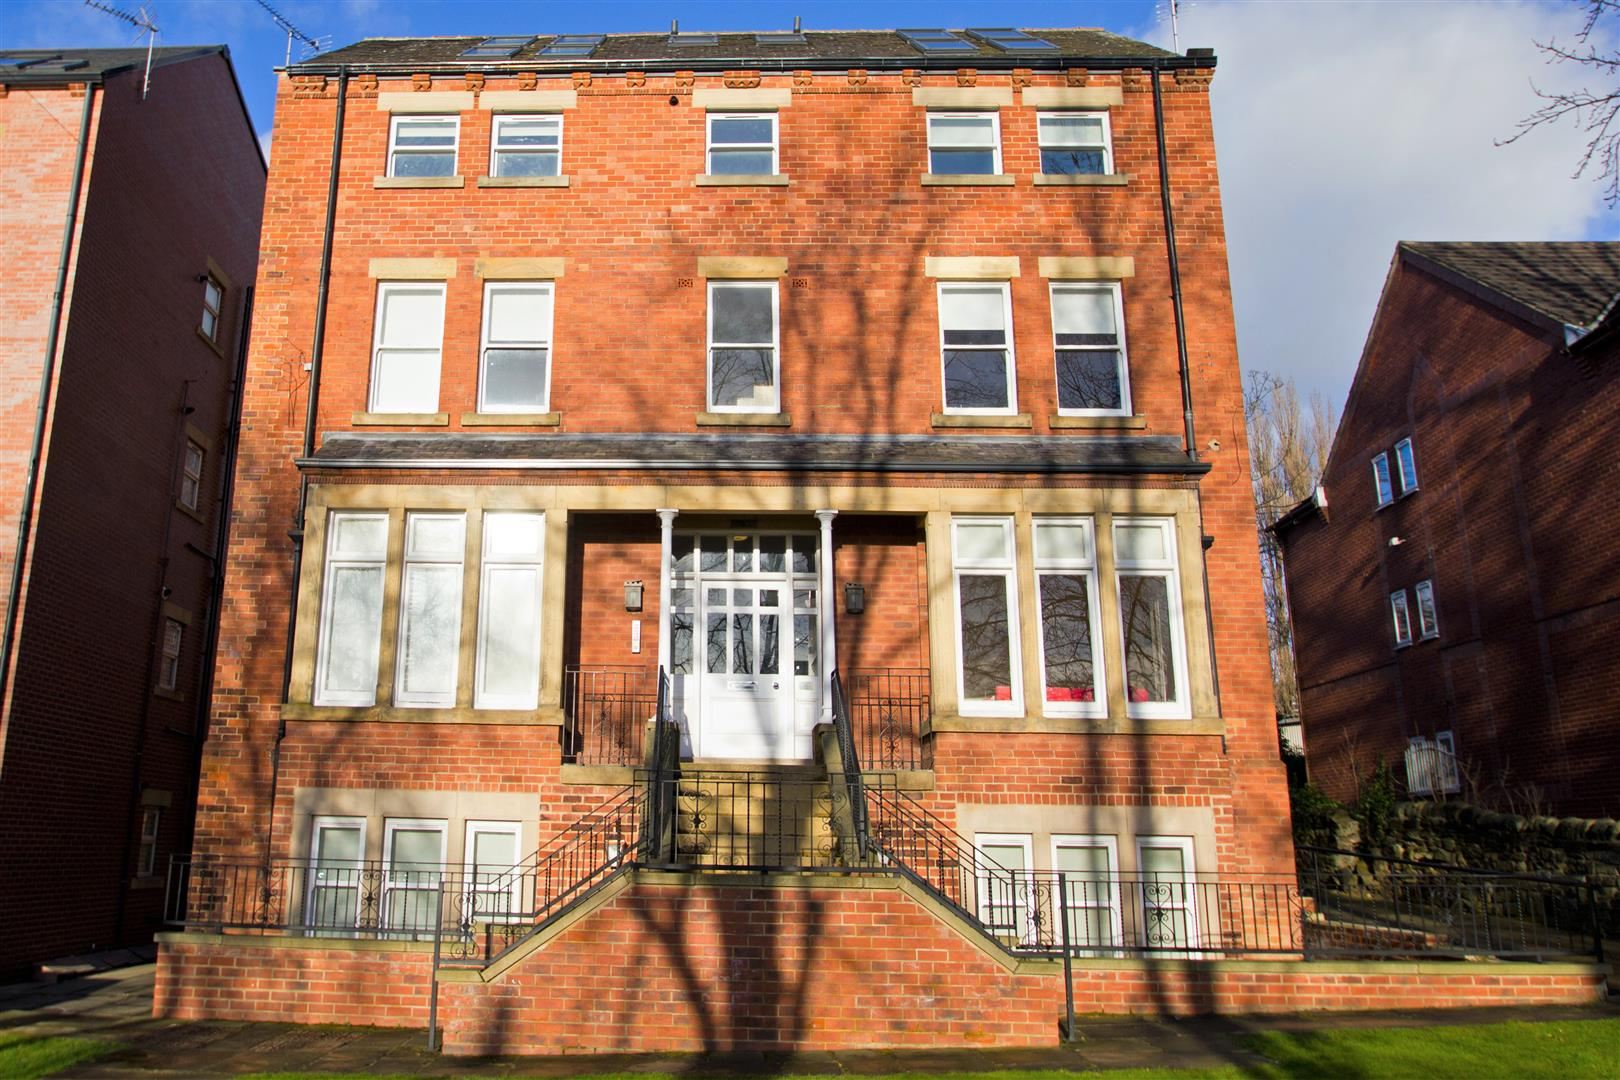 Broomfield Crescent, Headingley, LS6 3DD Image